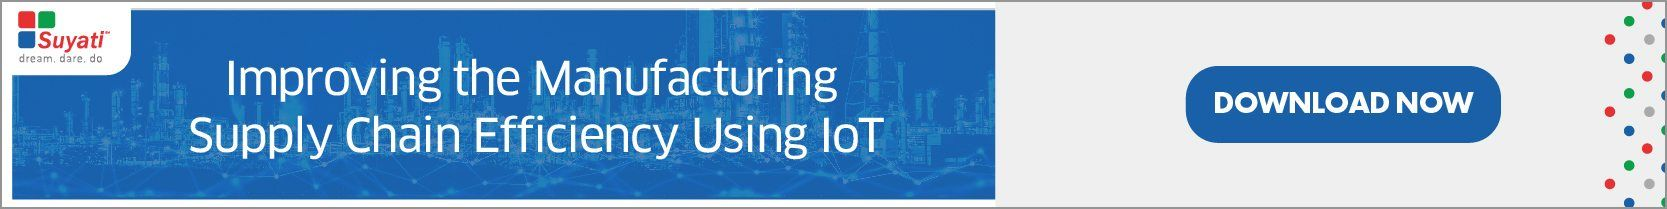 E-Book - Improving the Manufacturing Supply Chain Efficiency using IOT